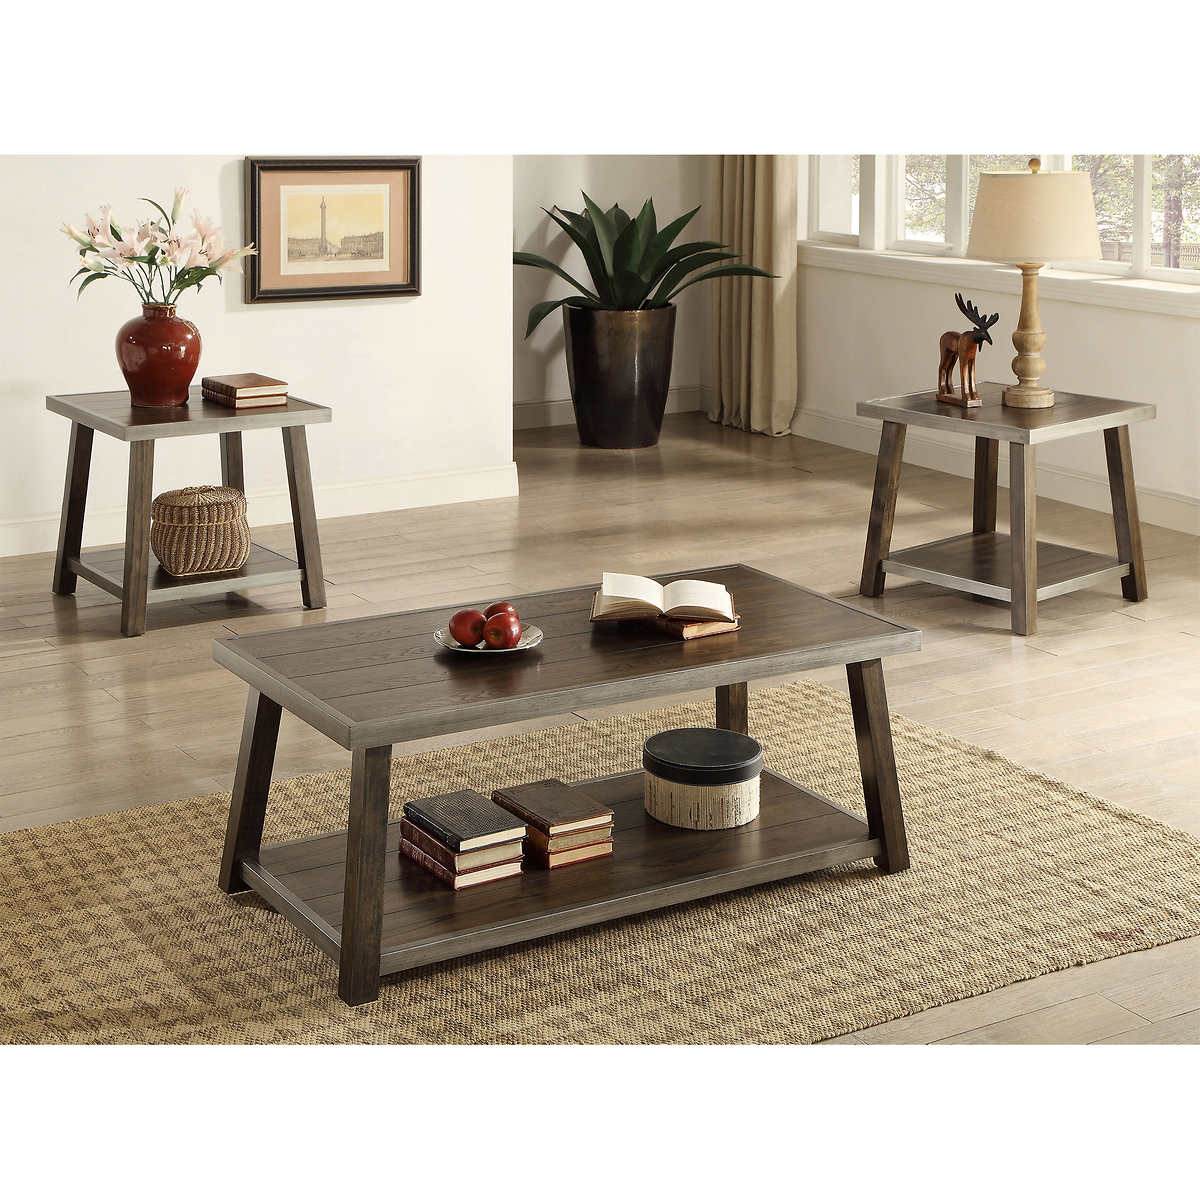 vienna coffee table and end tables service whalen zen computer desk ashley furniture promo code nesting wood target pedestal side who cuts glass for ethan allen round mirror with